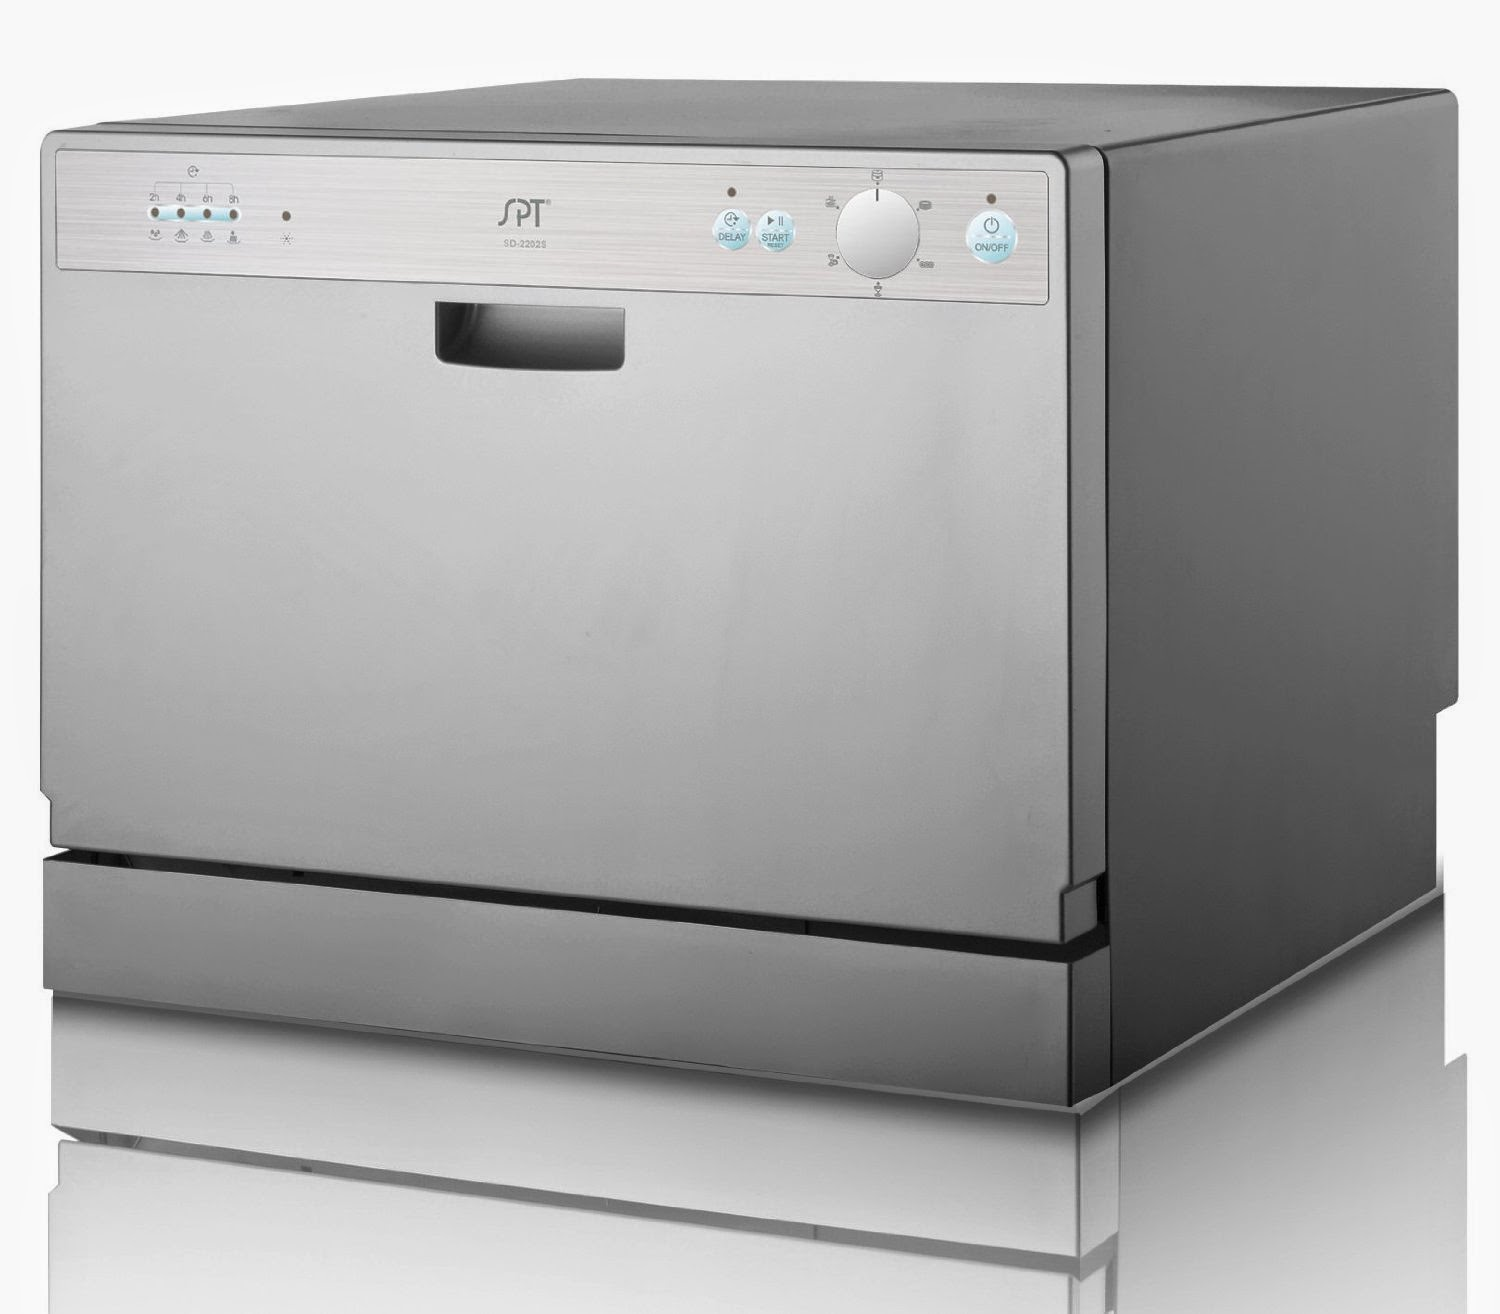 Silver SPT SD 2202S Countertop Dishwashers